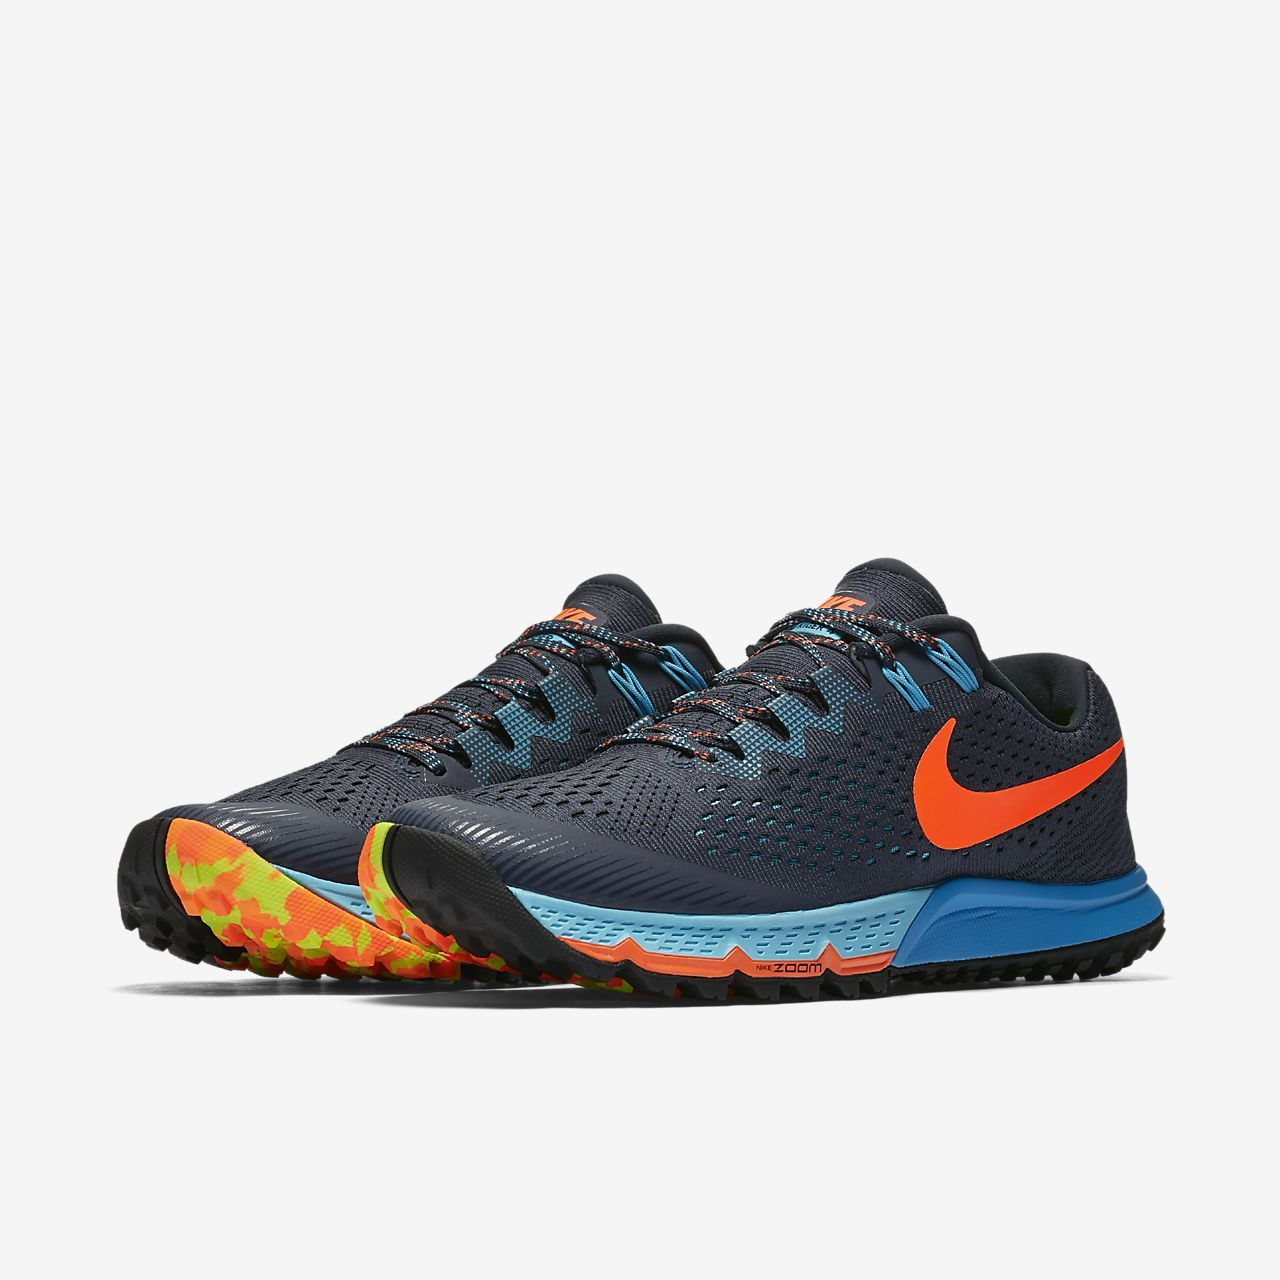 Nike Air Terra Ketchikan Olive and blue 104148 041 | Stuff | Pinterest |  Gore tex and Royals